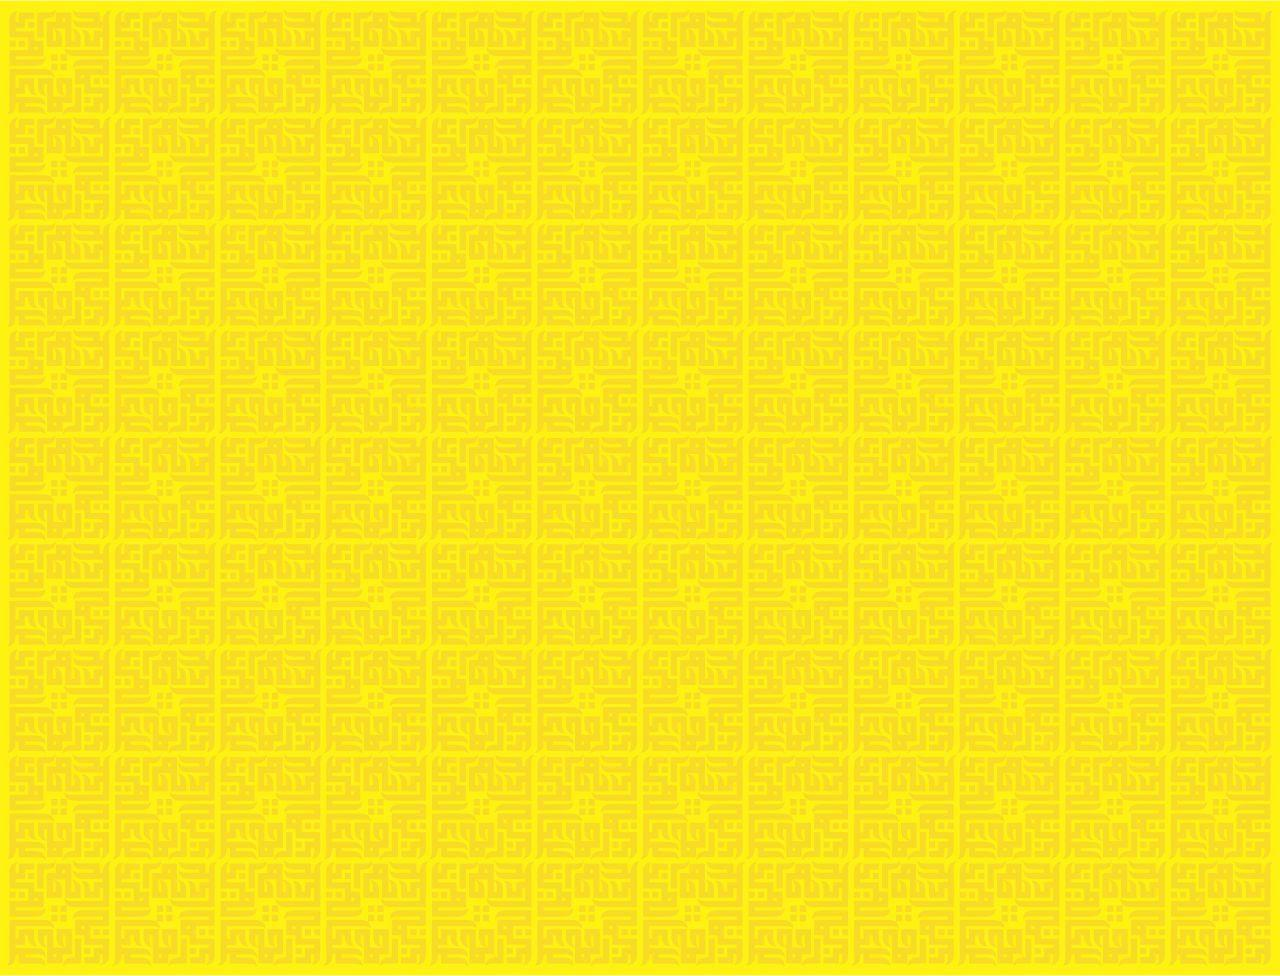 Download 68+ Background Warna Kuning Muda Gratis Terbaik